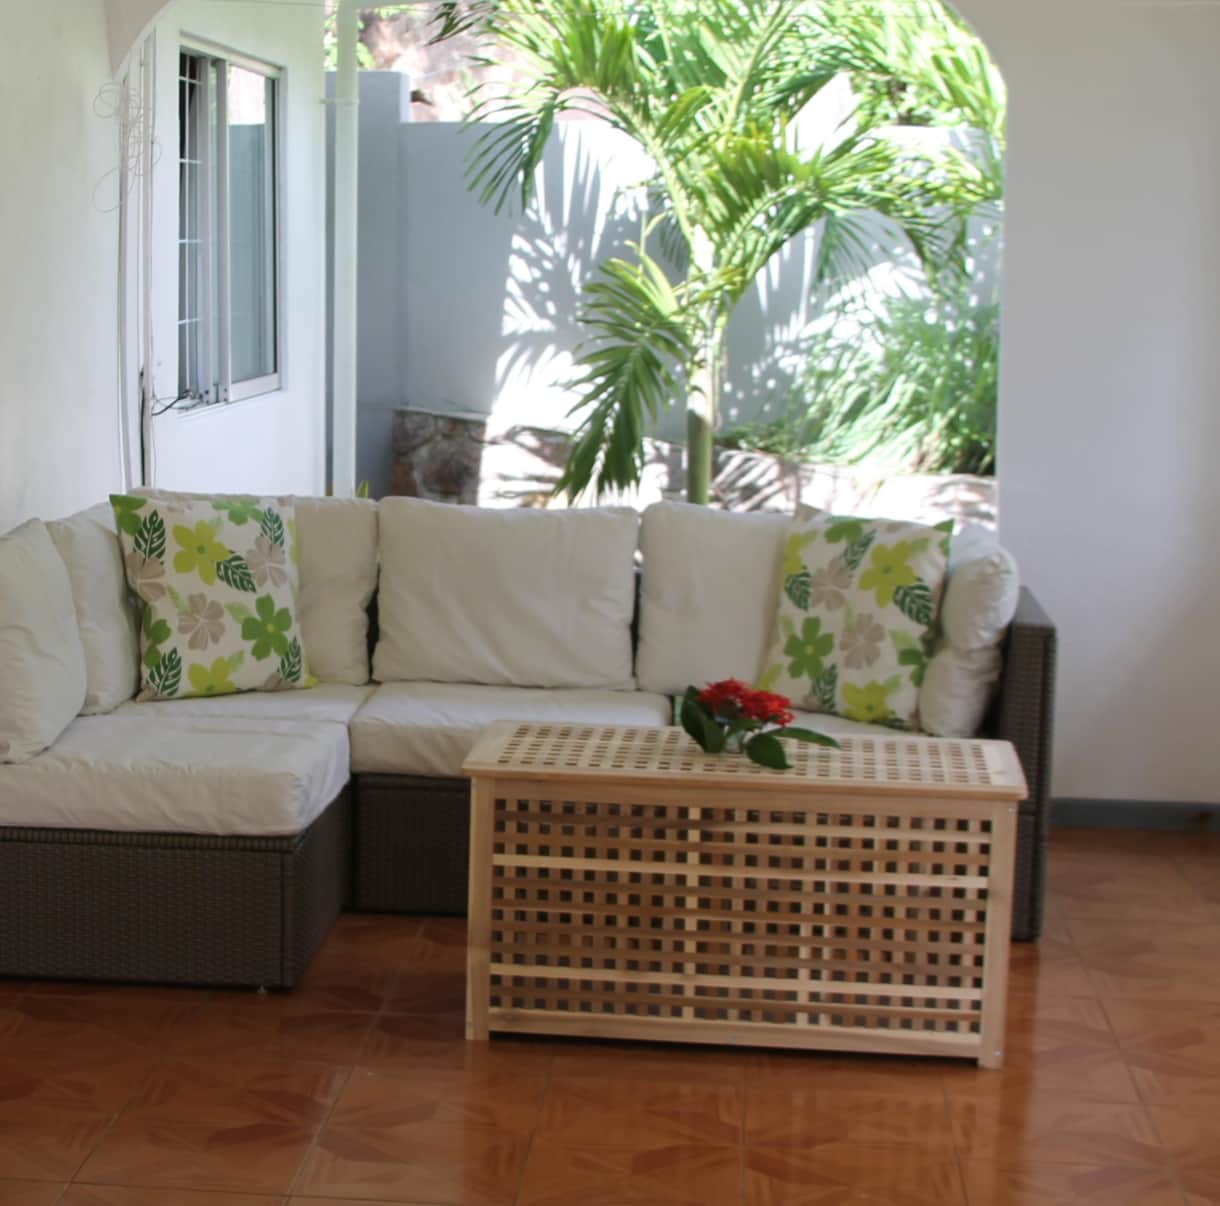 Main Terrace features rattan furniture, lounge chairs and 12 seater teak dining set